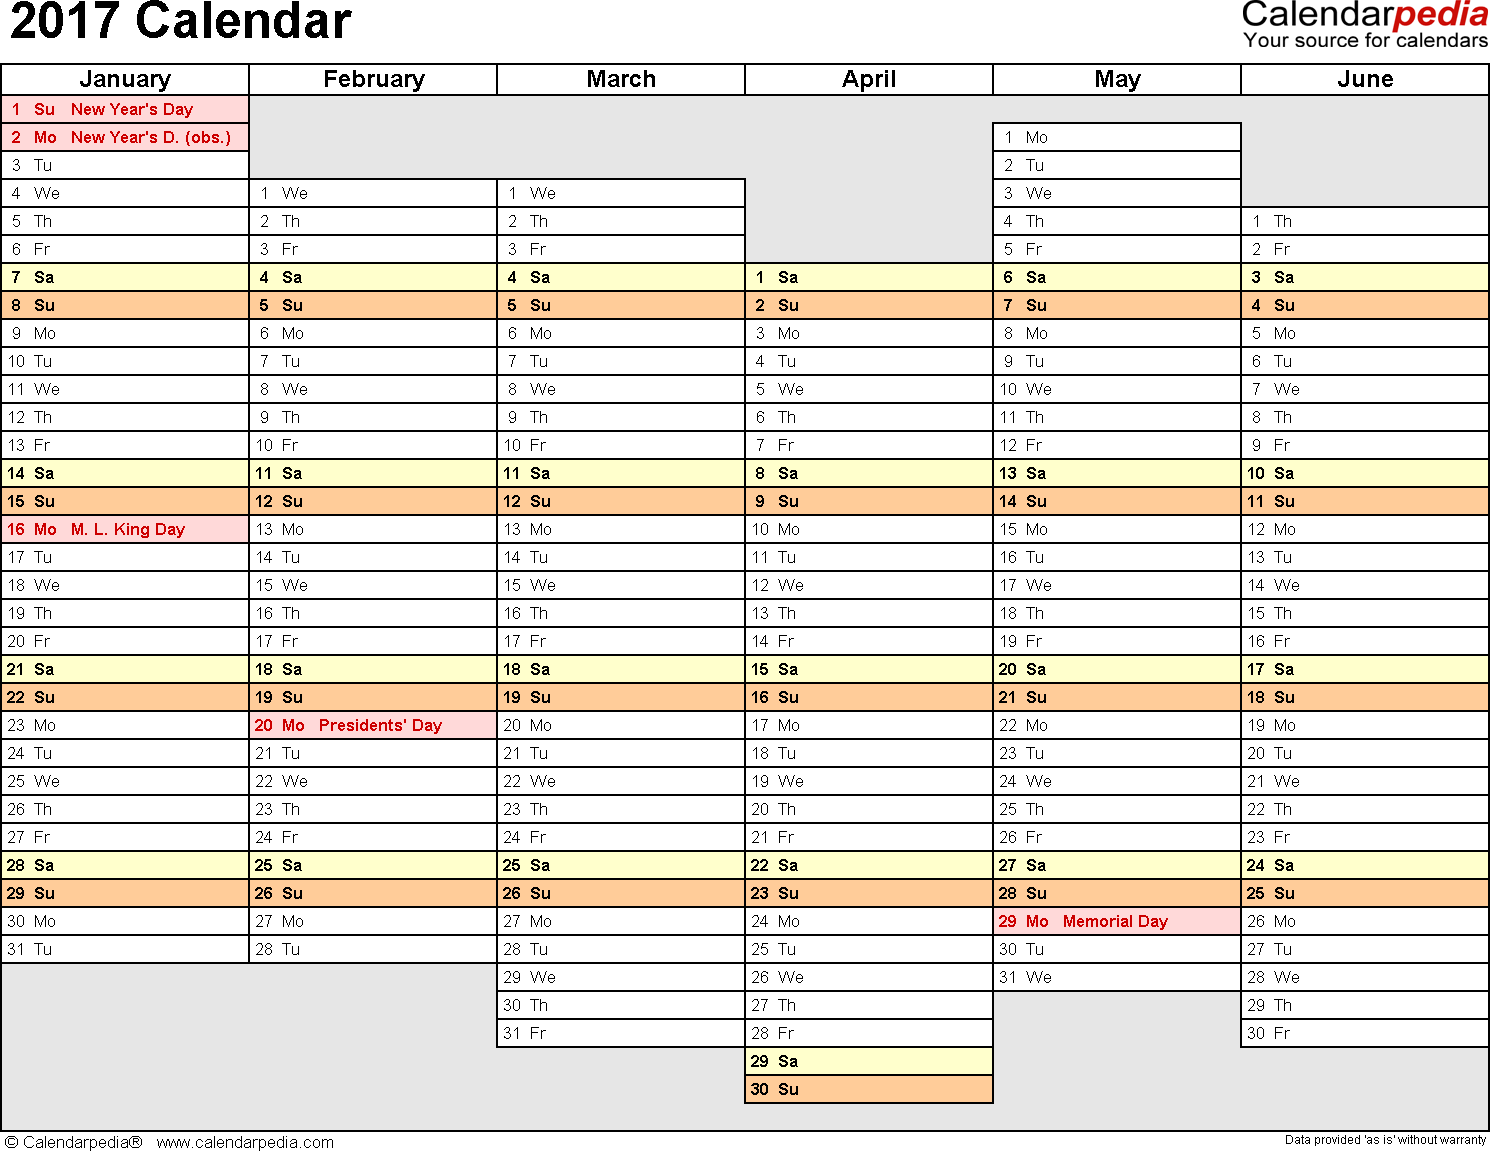 Template 4: 2017 Calendar for Excel, months horizontally, 2 pages, days of the week aligned/linear, landscape orientation